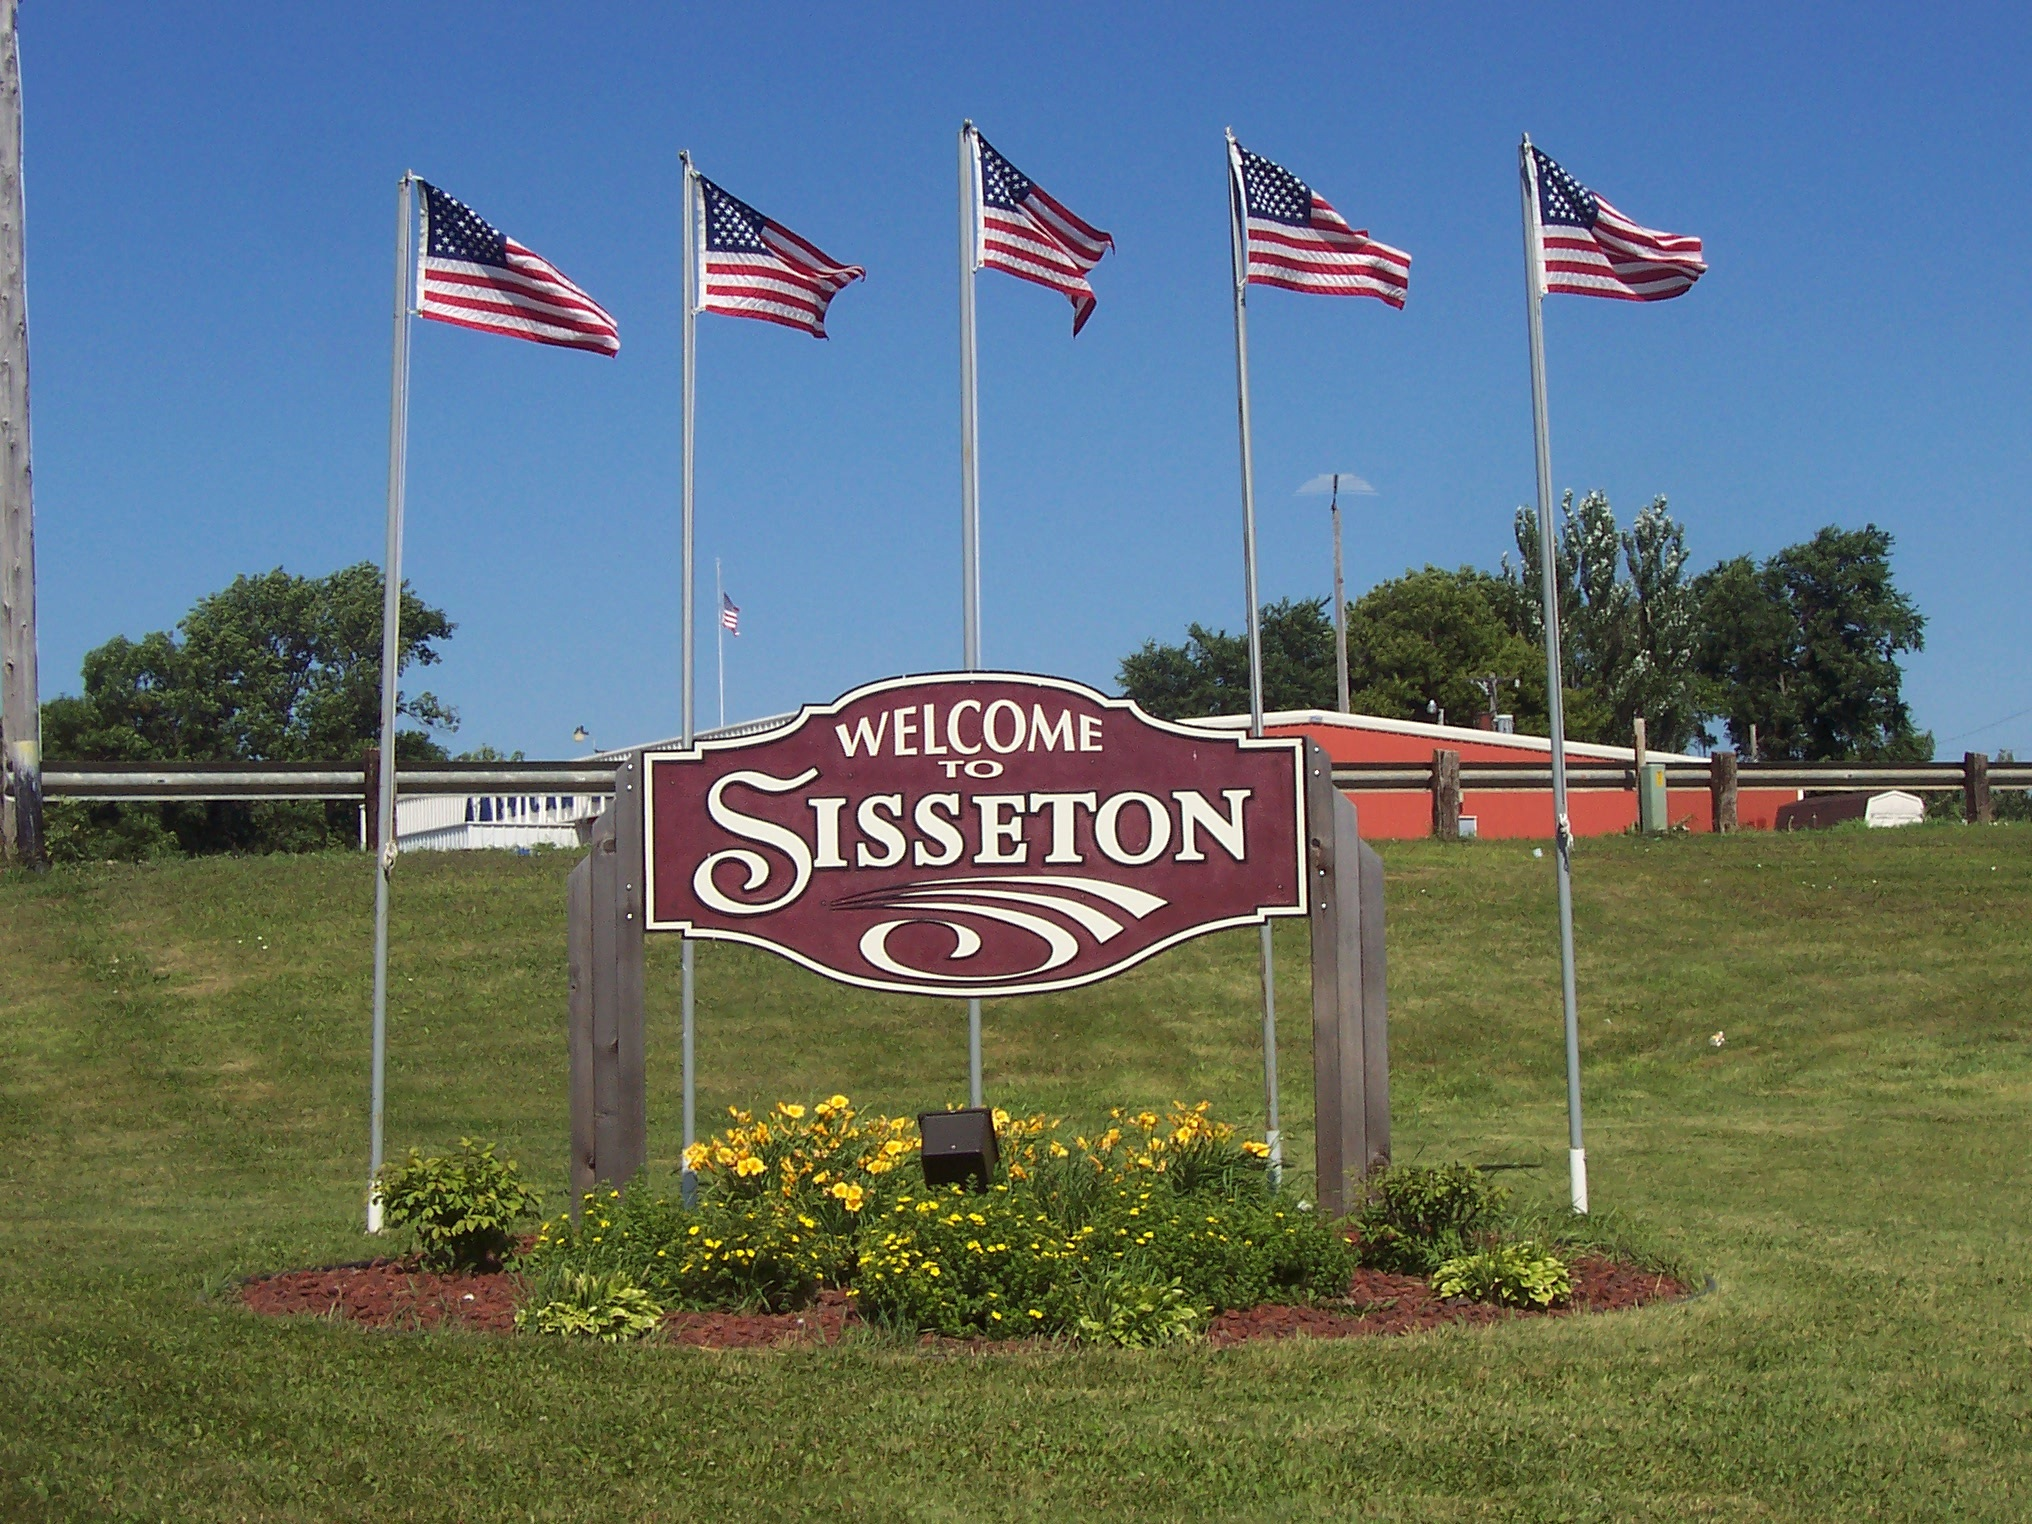 Artificial grass, synthetic turf in Sisseton, South Dakota